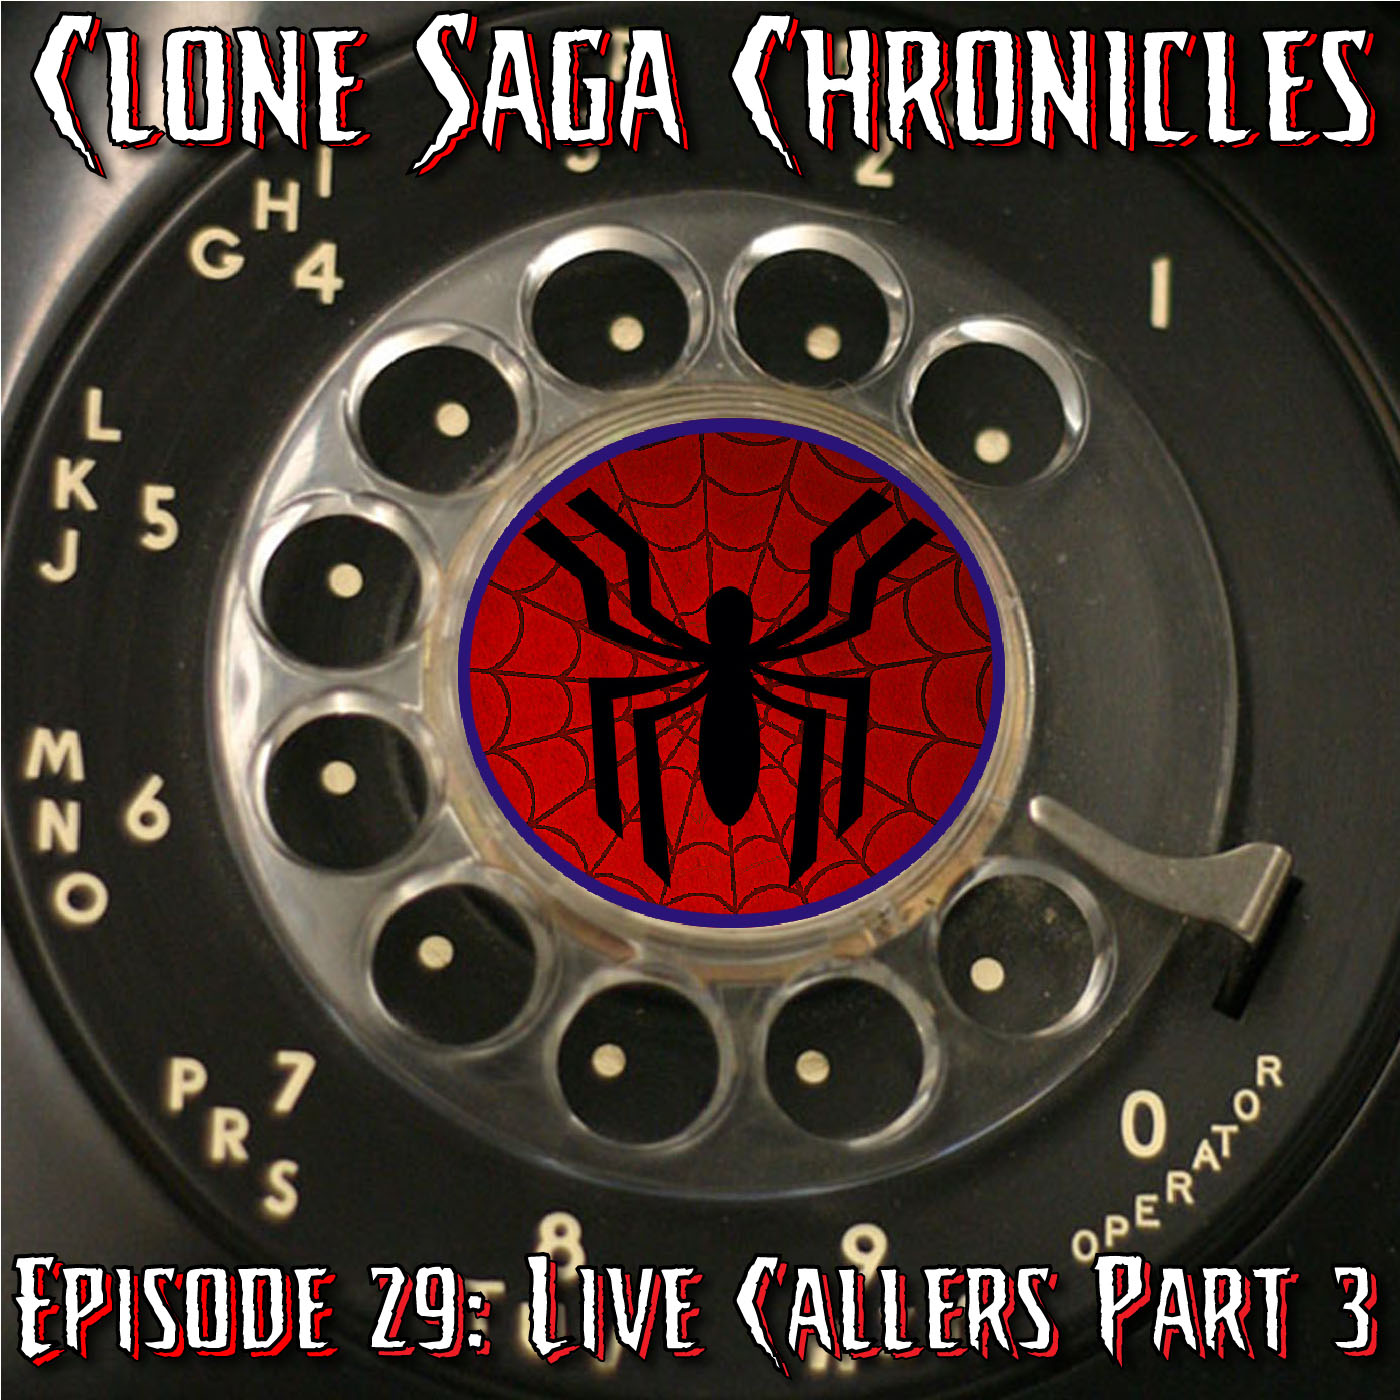 CSC Episode 29: Final Part of Live Callers and More!